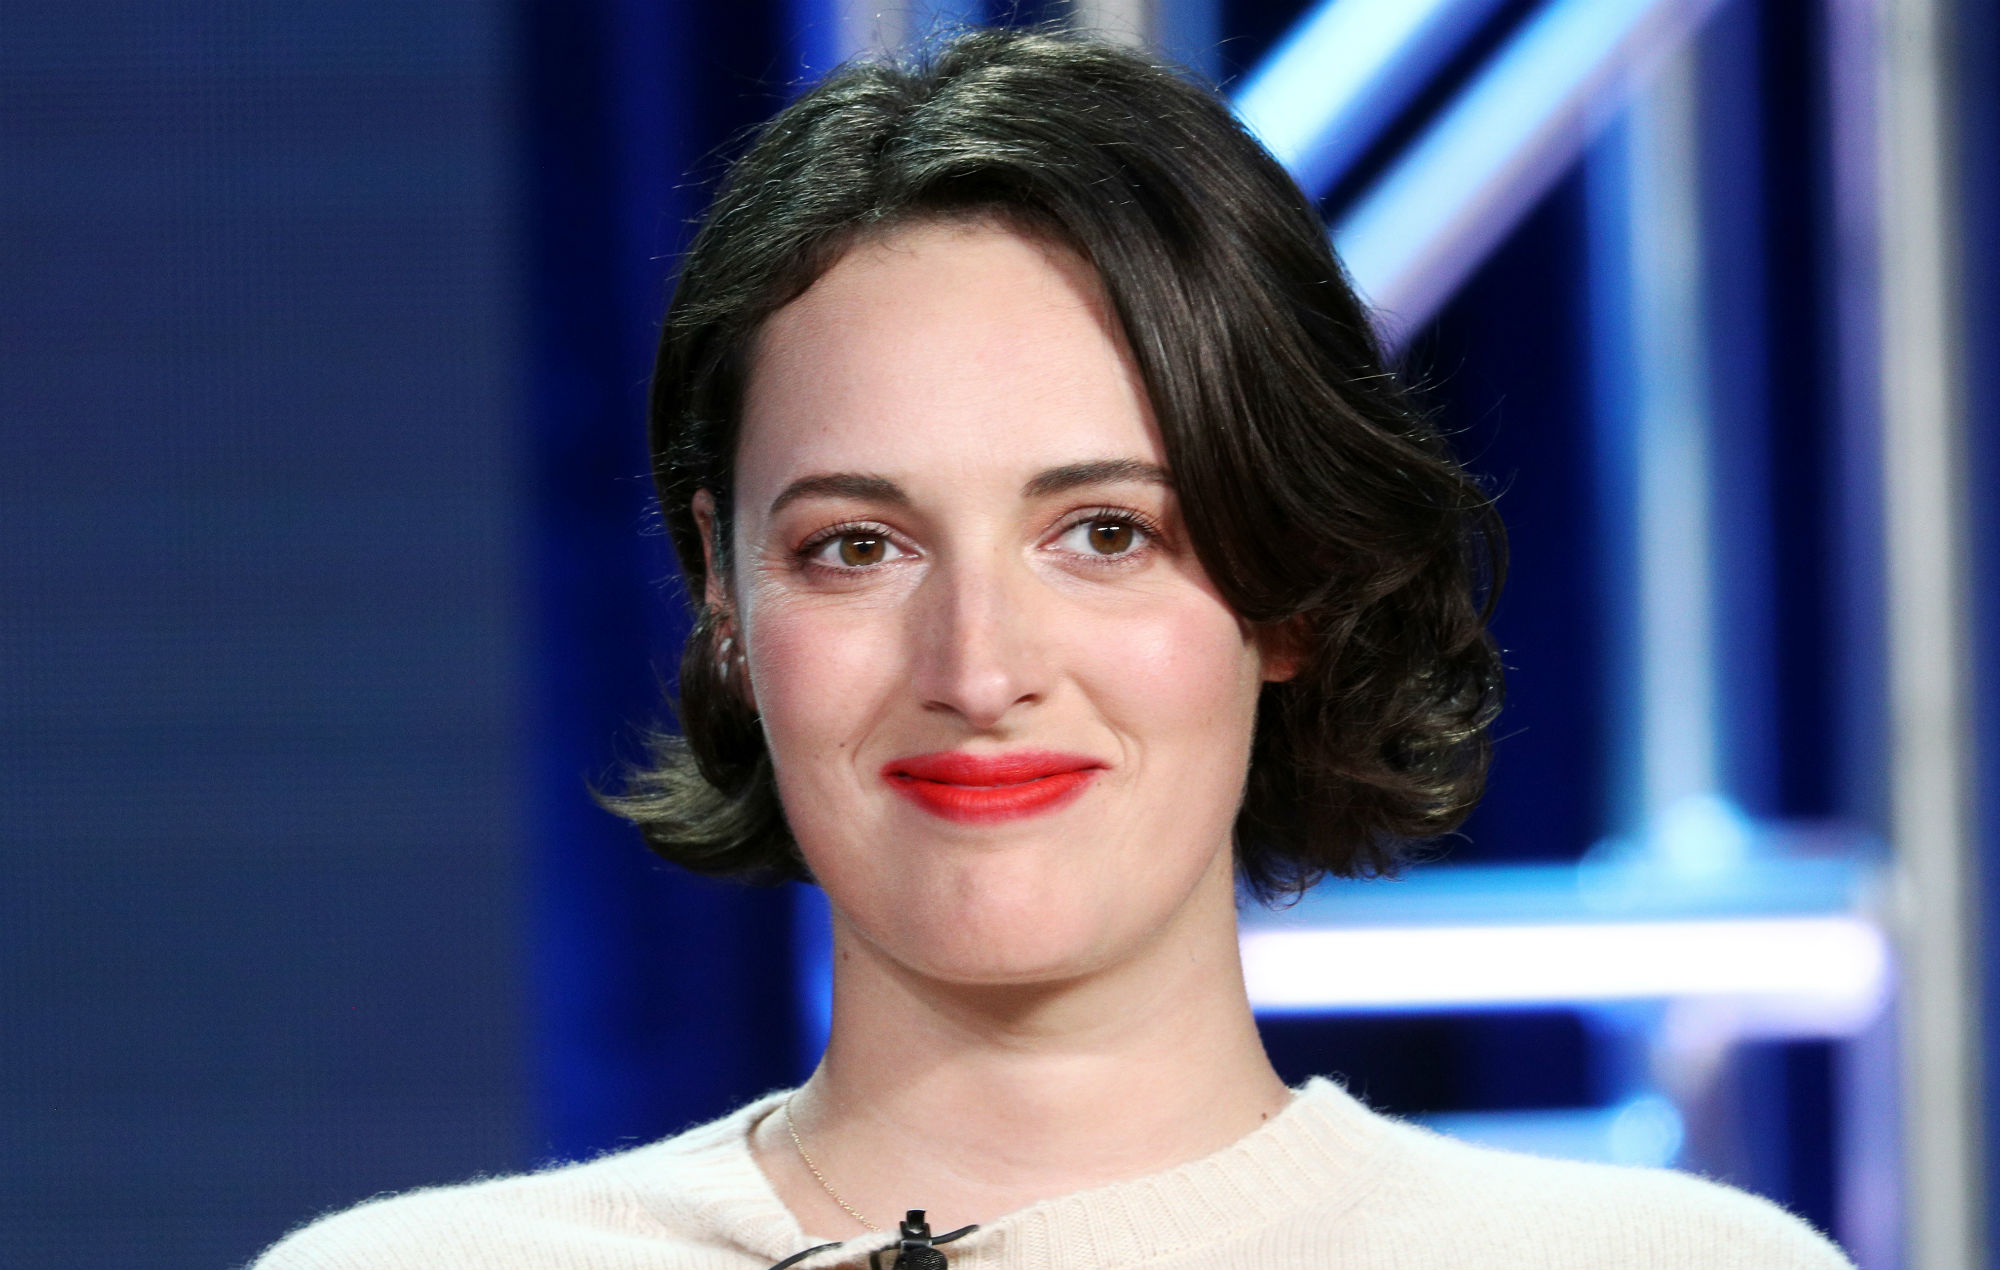 Phoebe Waller-Bridge of the television show 'Fleabag' speaks during the Amazon Prime Video Visionary Voices segment, 2019